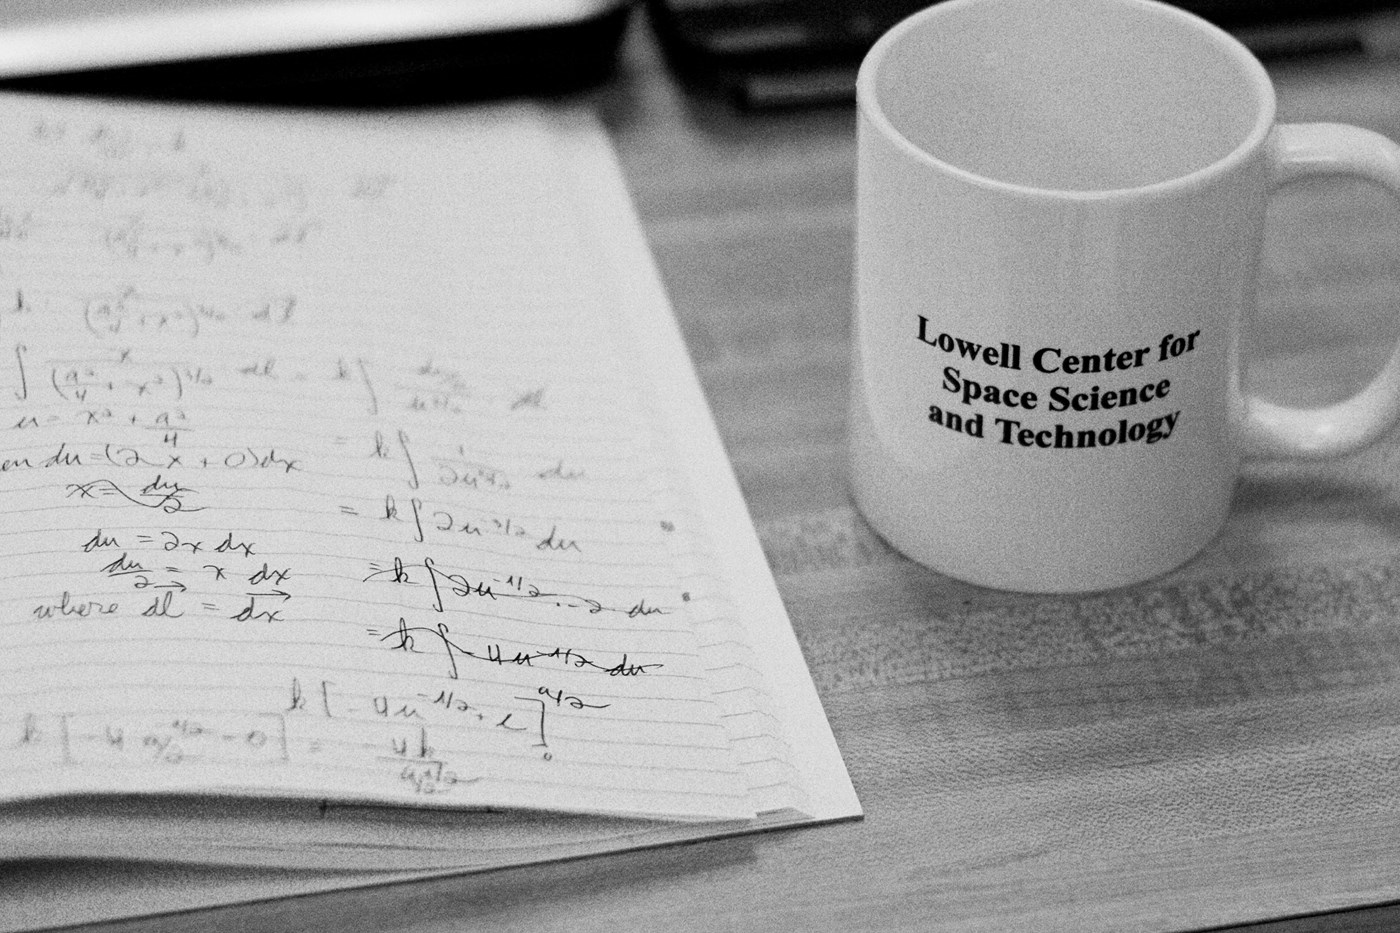 Lowell center for space science and technology mug and notebook